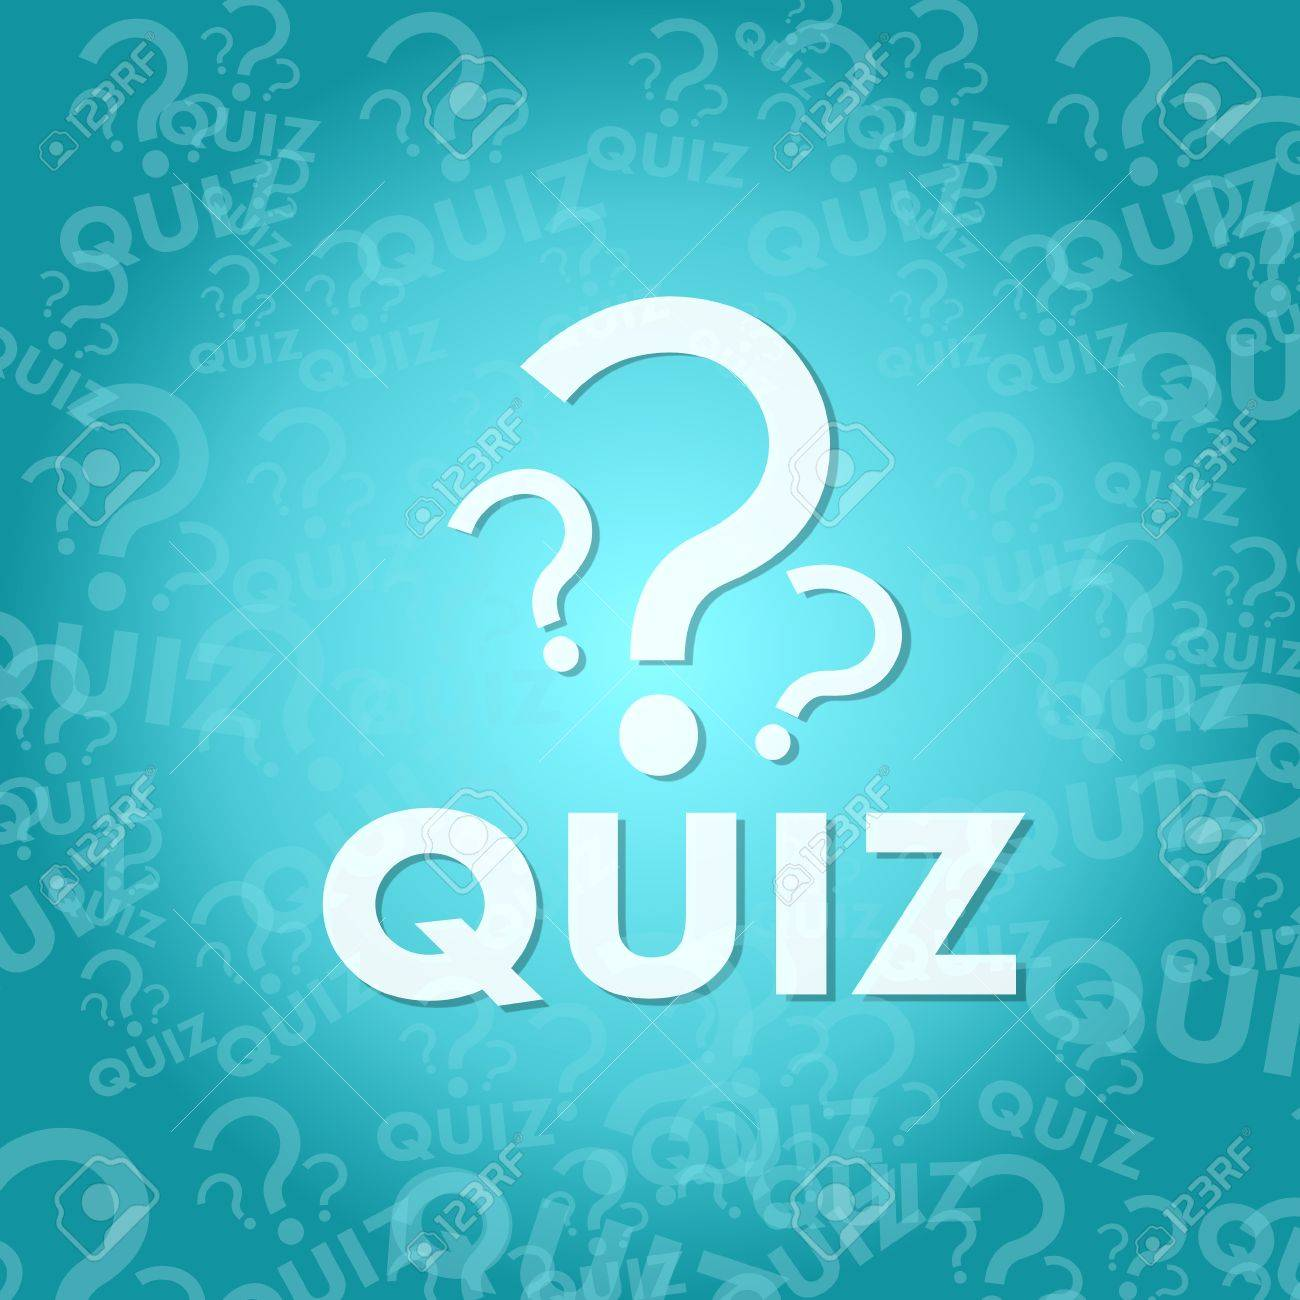 Stylish Quiz Sign Background With Space For Own Text Stock Photo Picture And Royalty Free Image Image 27956493